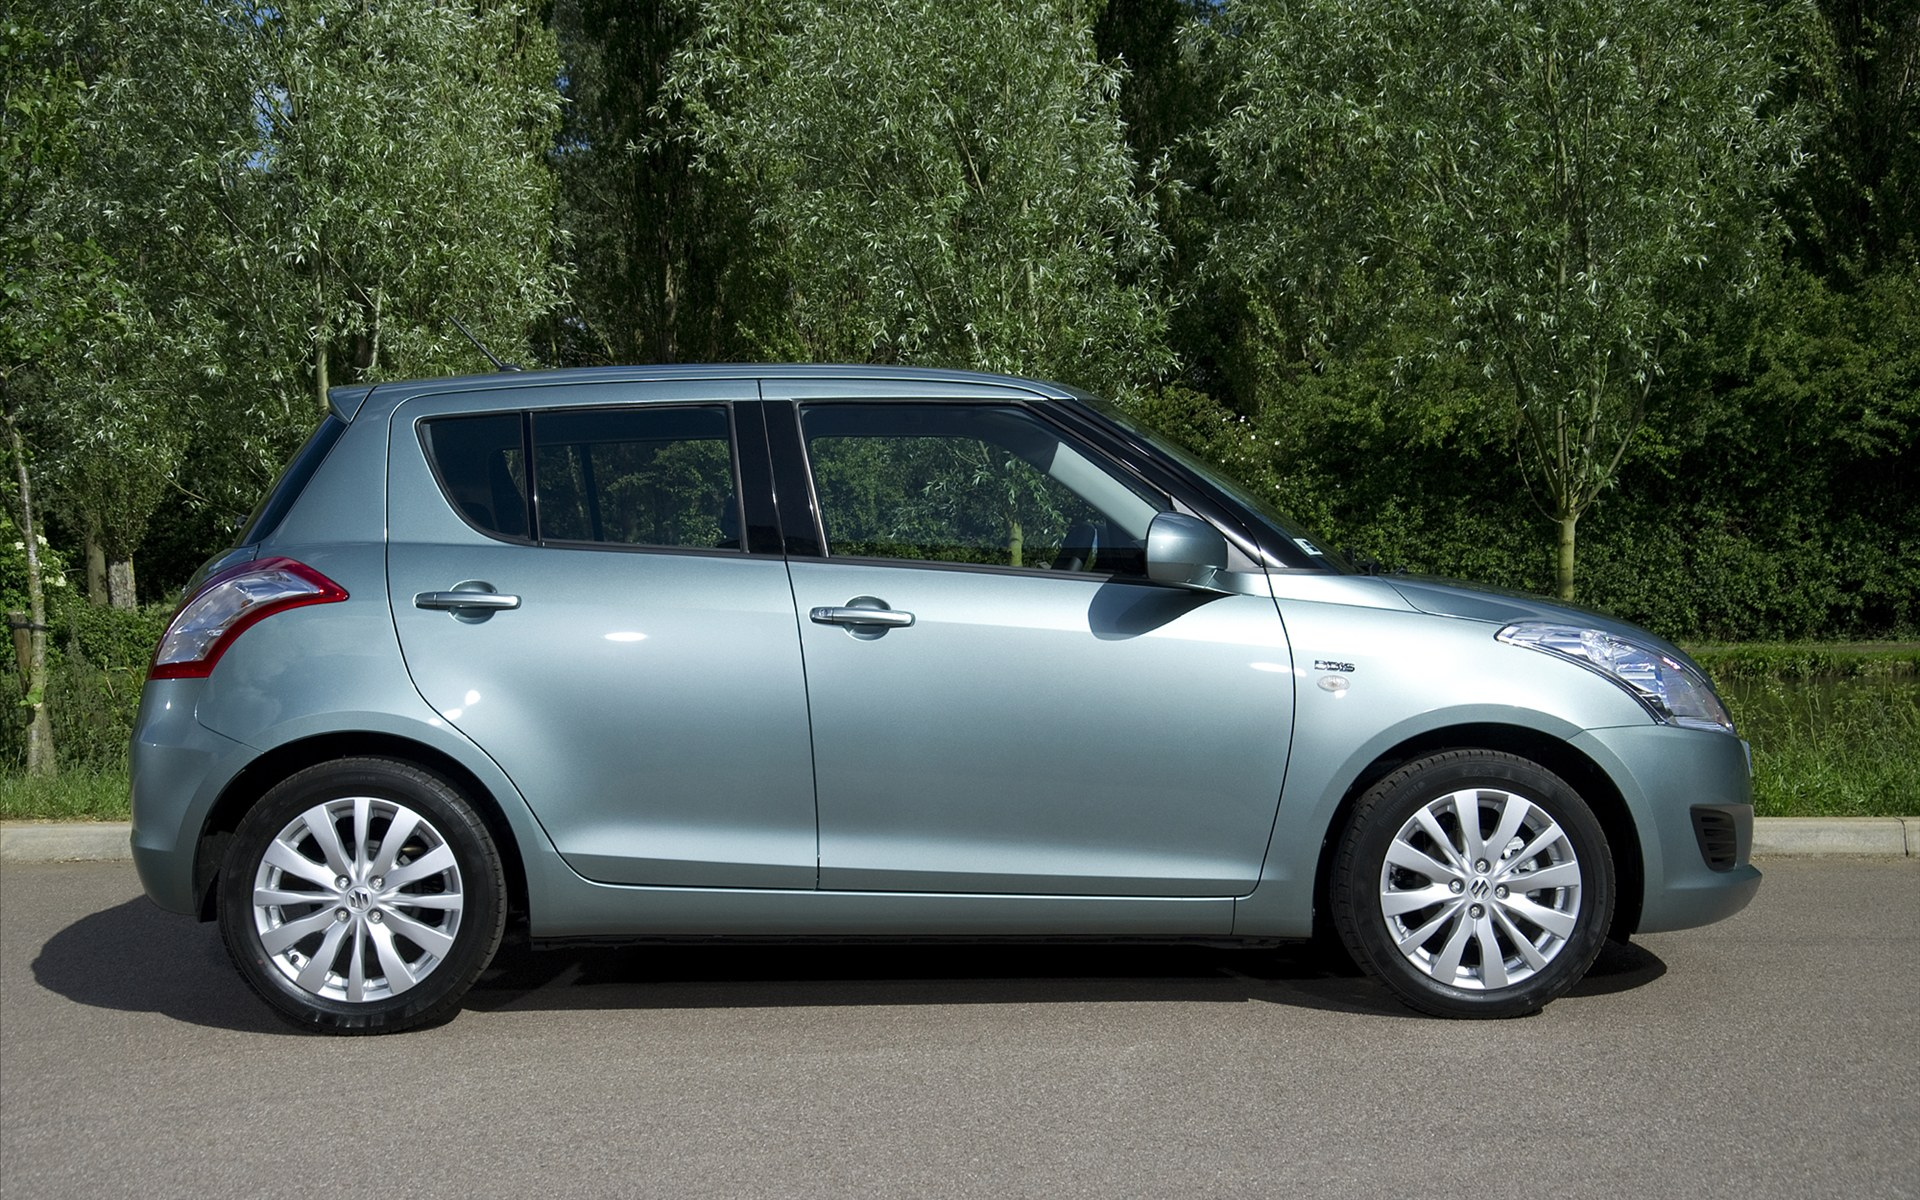 Suzuki Swift DDiS 2011 3 European Suzuki Swift Diesel Vehicle  Energy Efficient and Fuel Economic